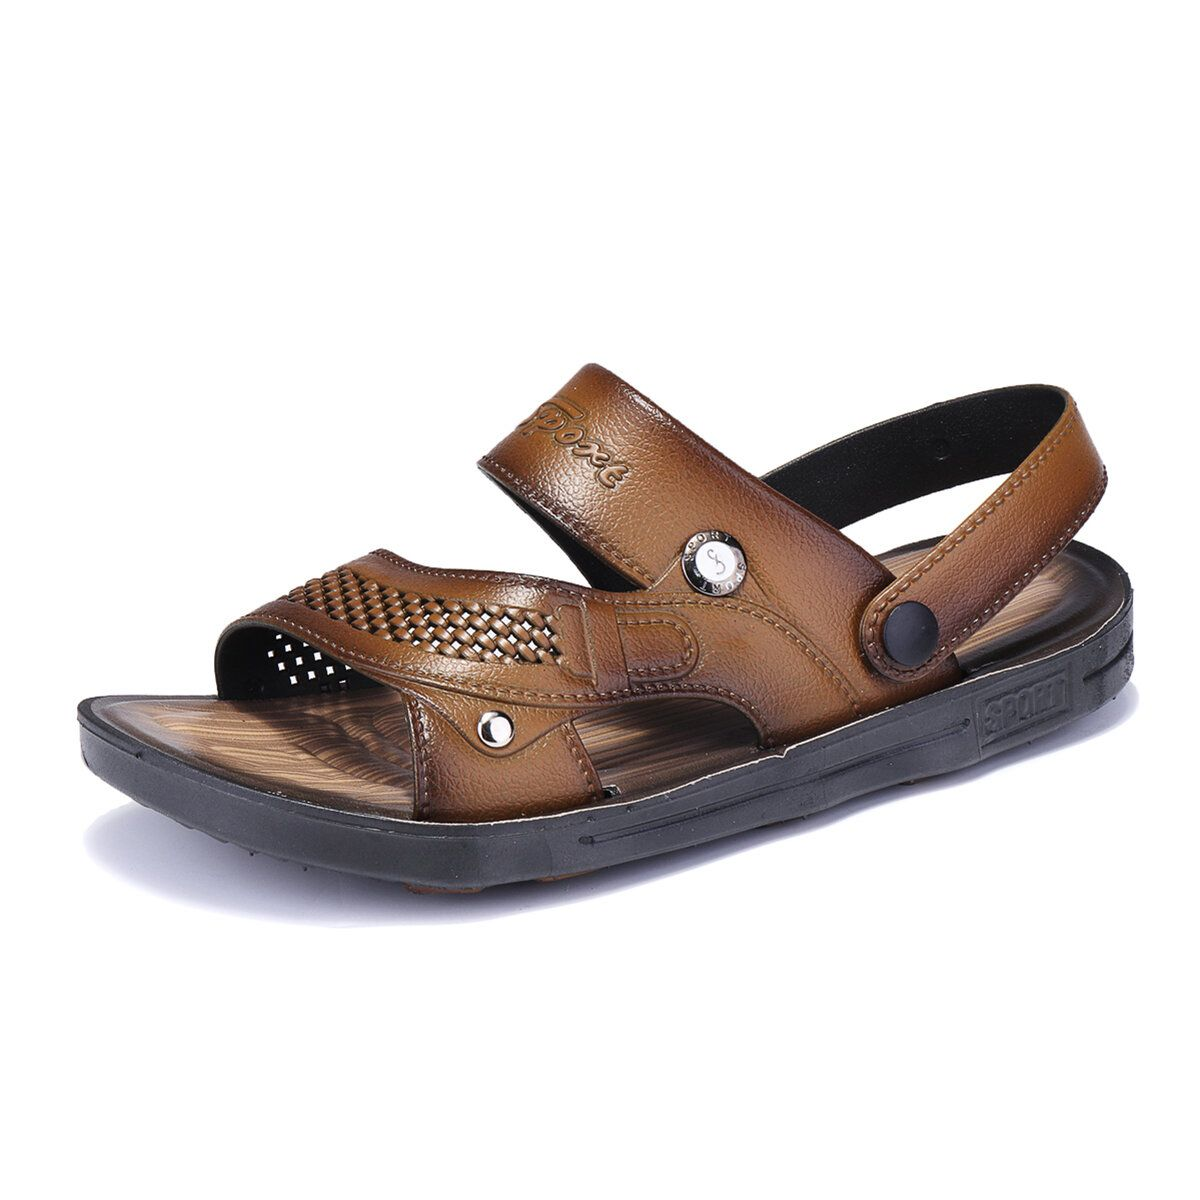 CKW US$28.40 Men Comfy Two Way Wear Leather Sandals Beach Slippers Sandals